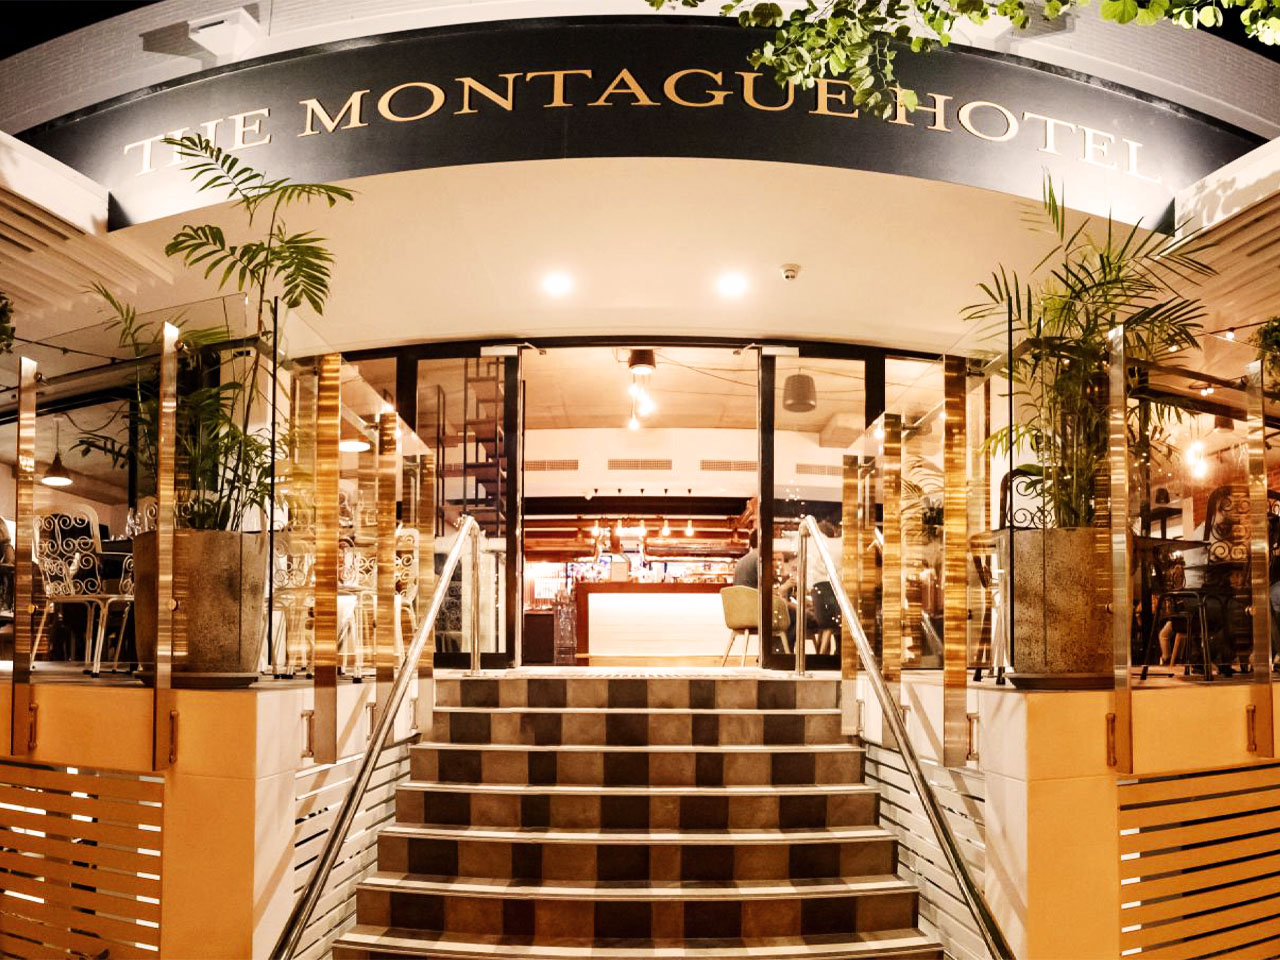 Montague Hotel entrance with sign above steps